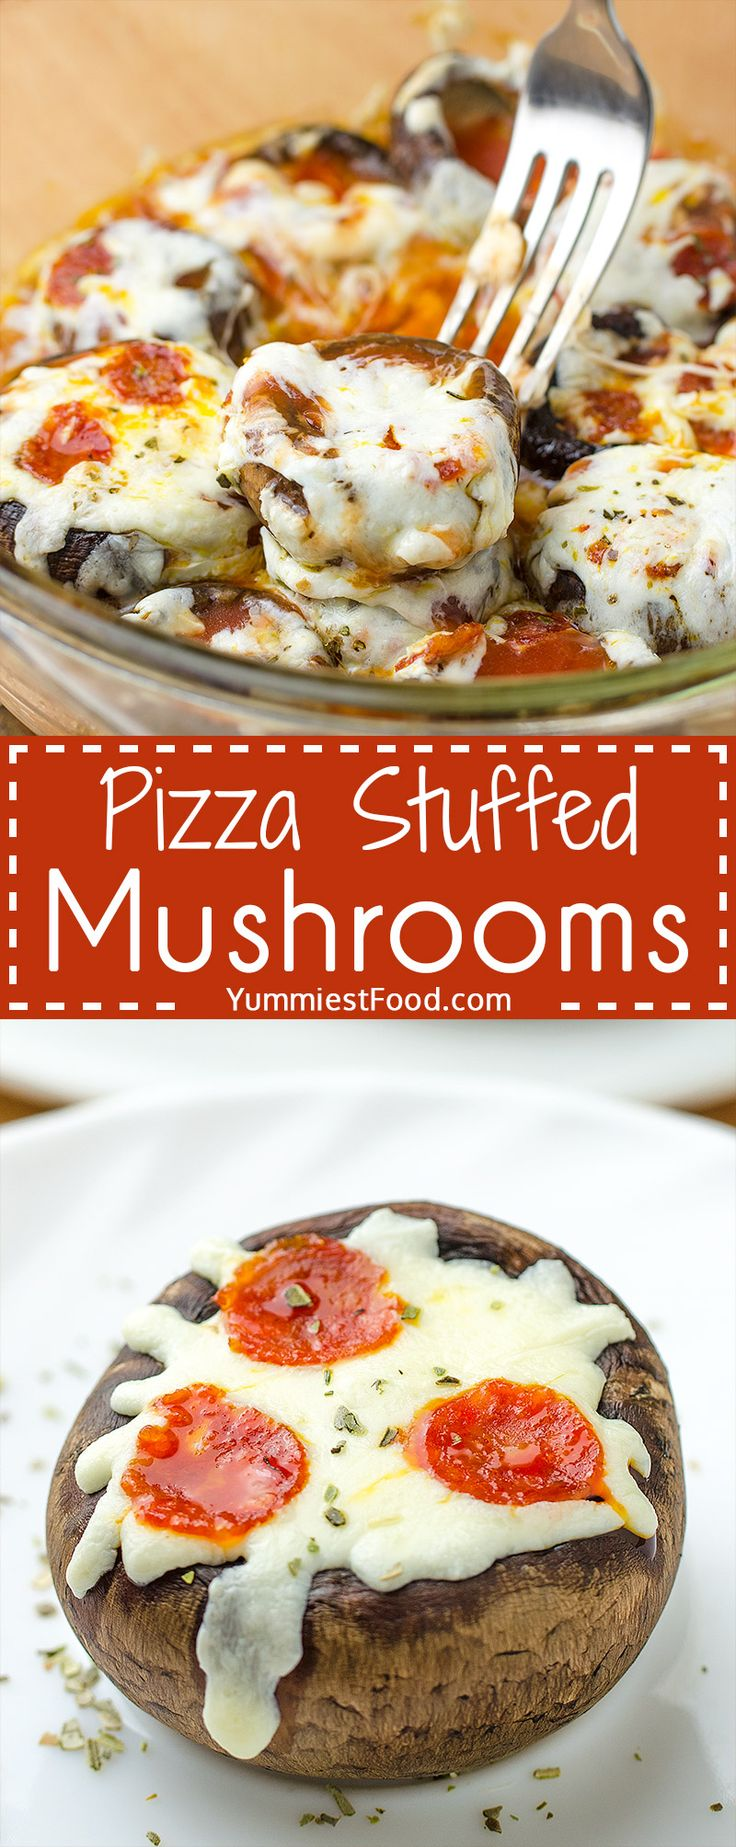 PIZZA STUFFED MUSHROOMS - Homemade, delicious and easy appetizer loved by adults and kids!